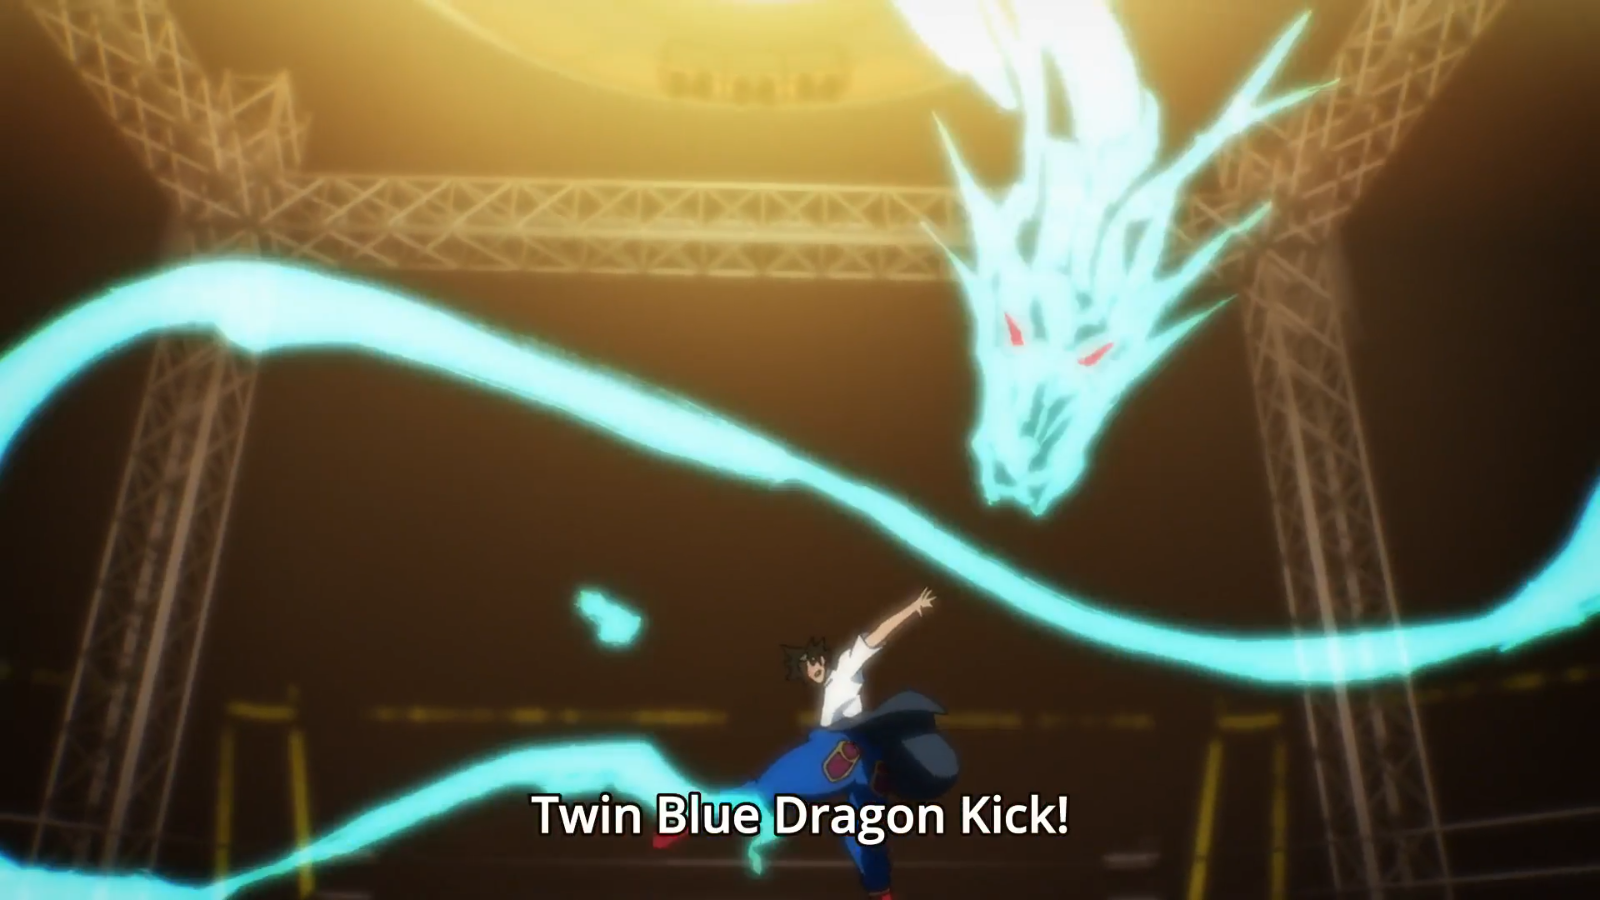 Jin Mori Original 2 Twin Blue Dragon The God Of High School Image Id 384113 Image Abyss People such as raditz have planetary durability but the speed difference between him and mori would be why he would lose. jin mori original 2 twin blue dragon